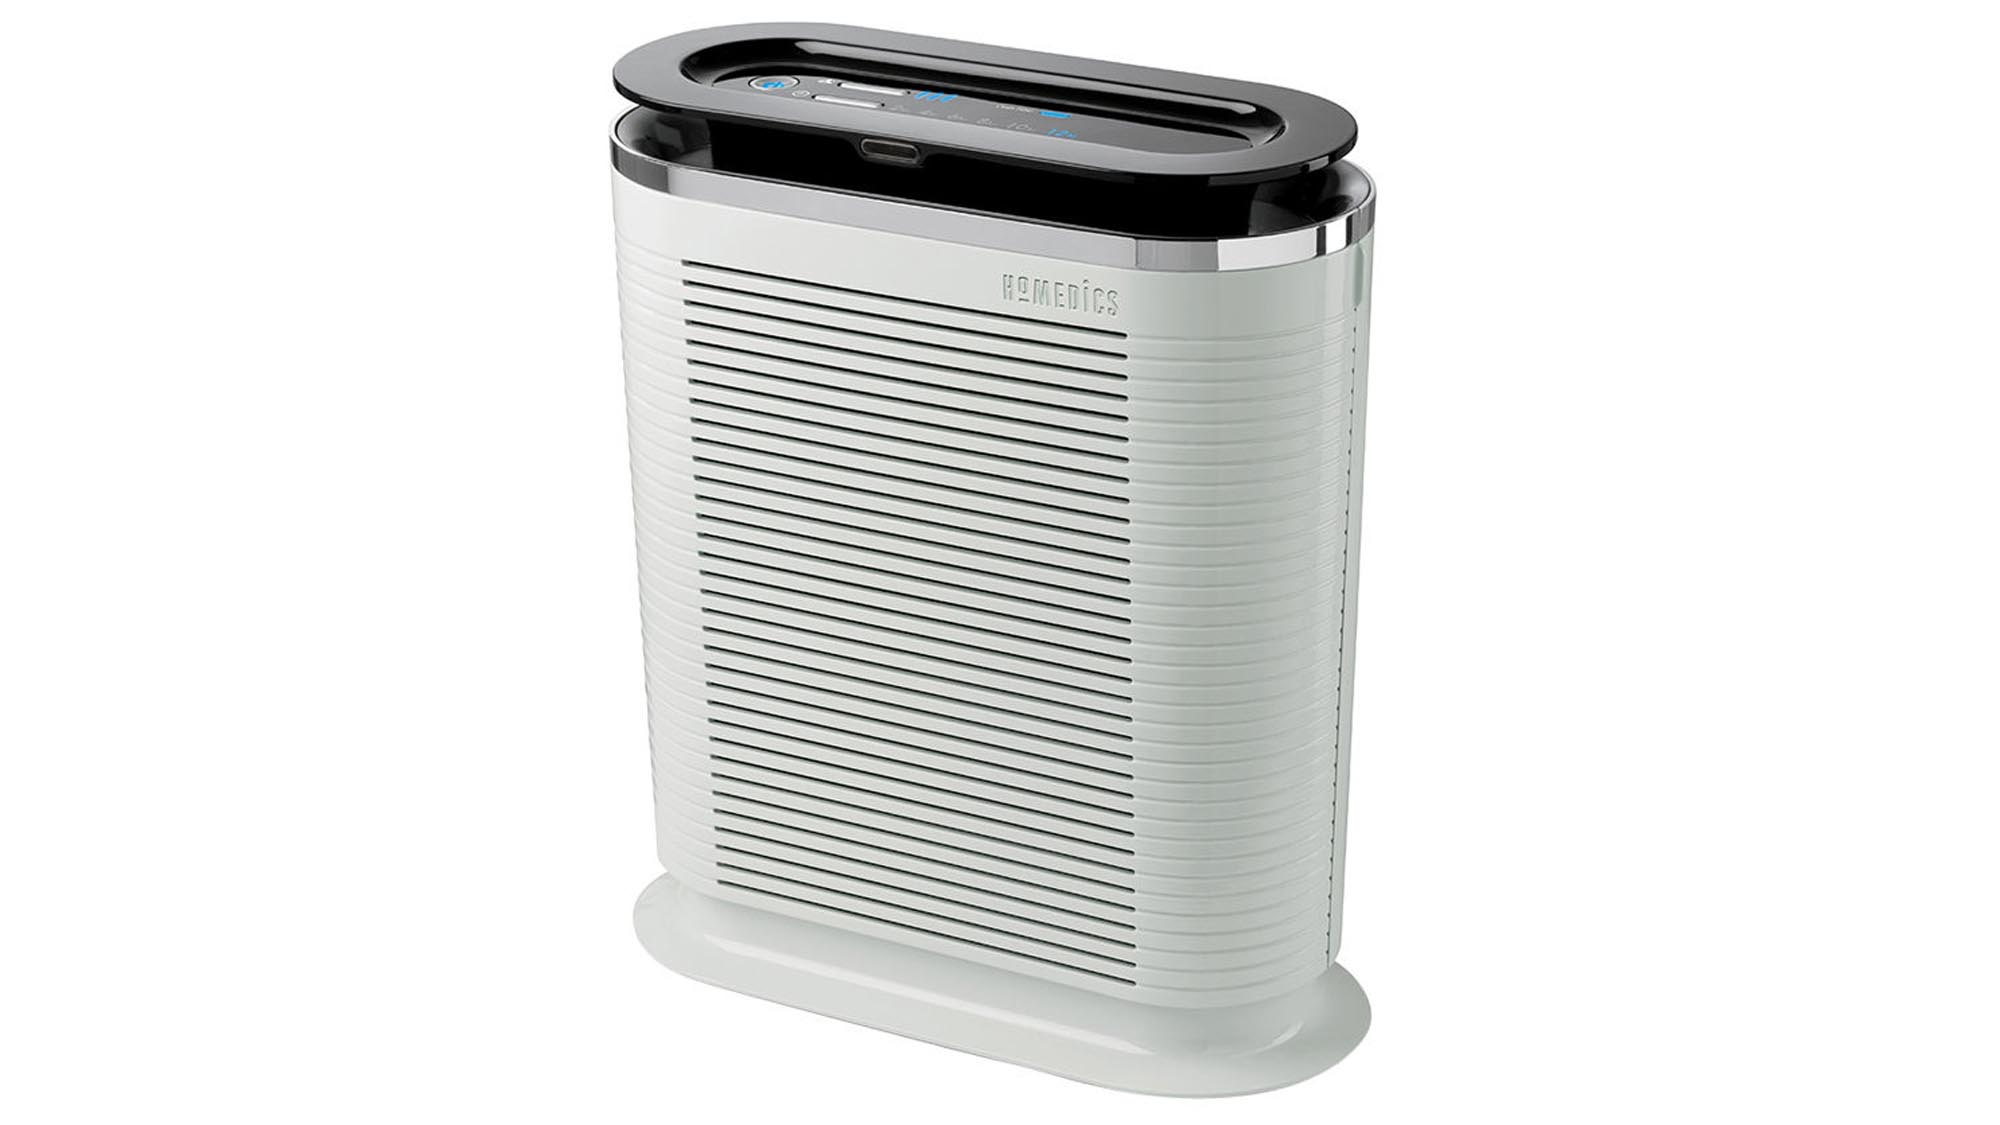 best air purifier we didnu0027t have huge for this machine given the low pricetag but itu0027s up there with the big boys when it comes to clearing - Air Purifier Reviews